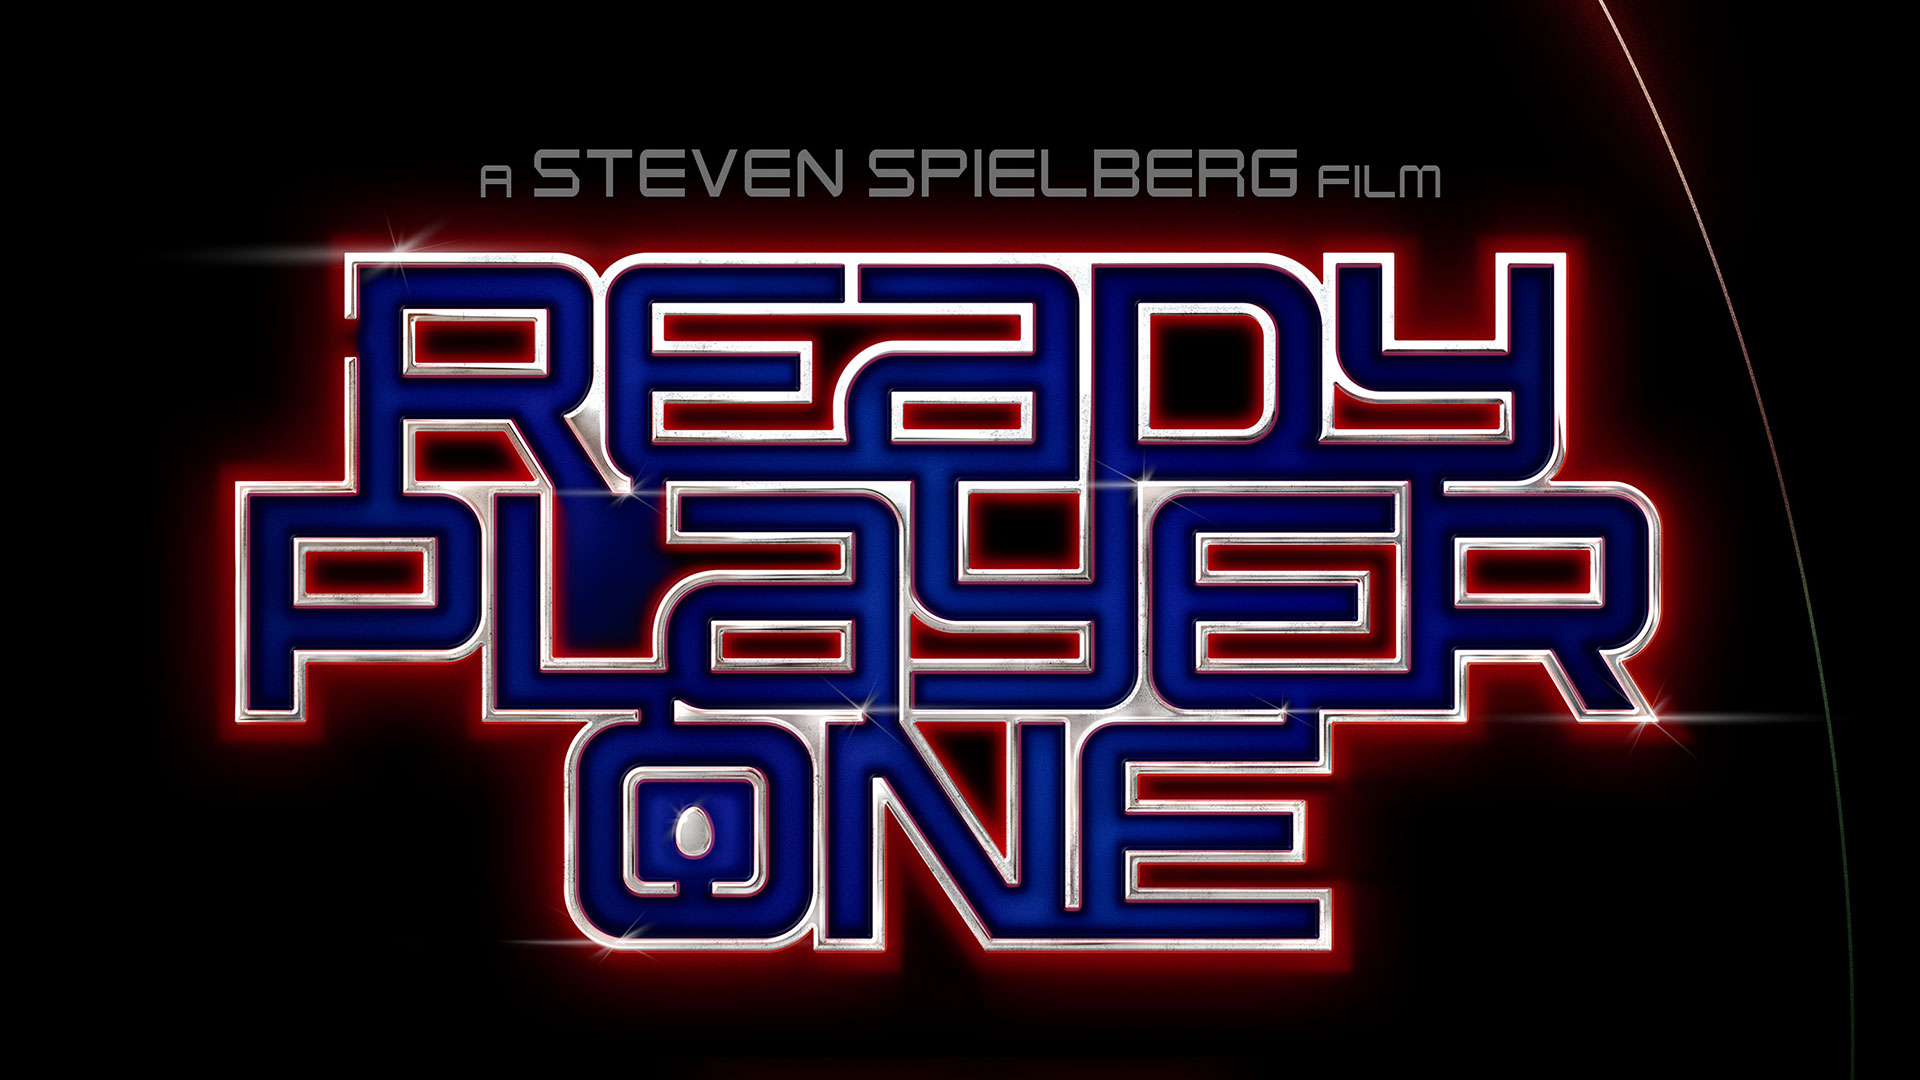 'Ready Player One' - landscape artwork